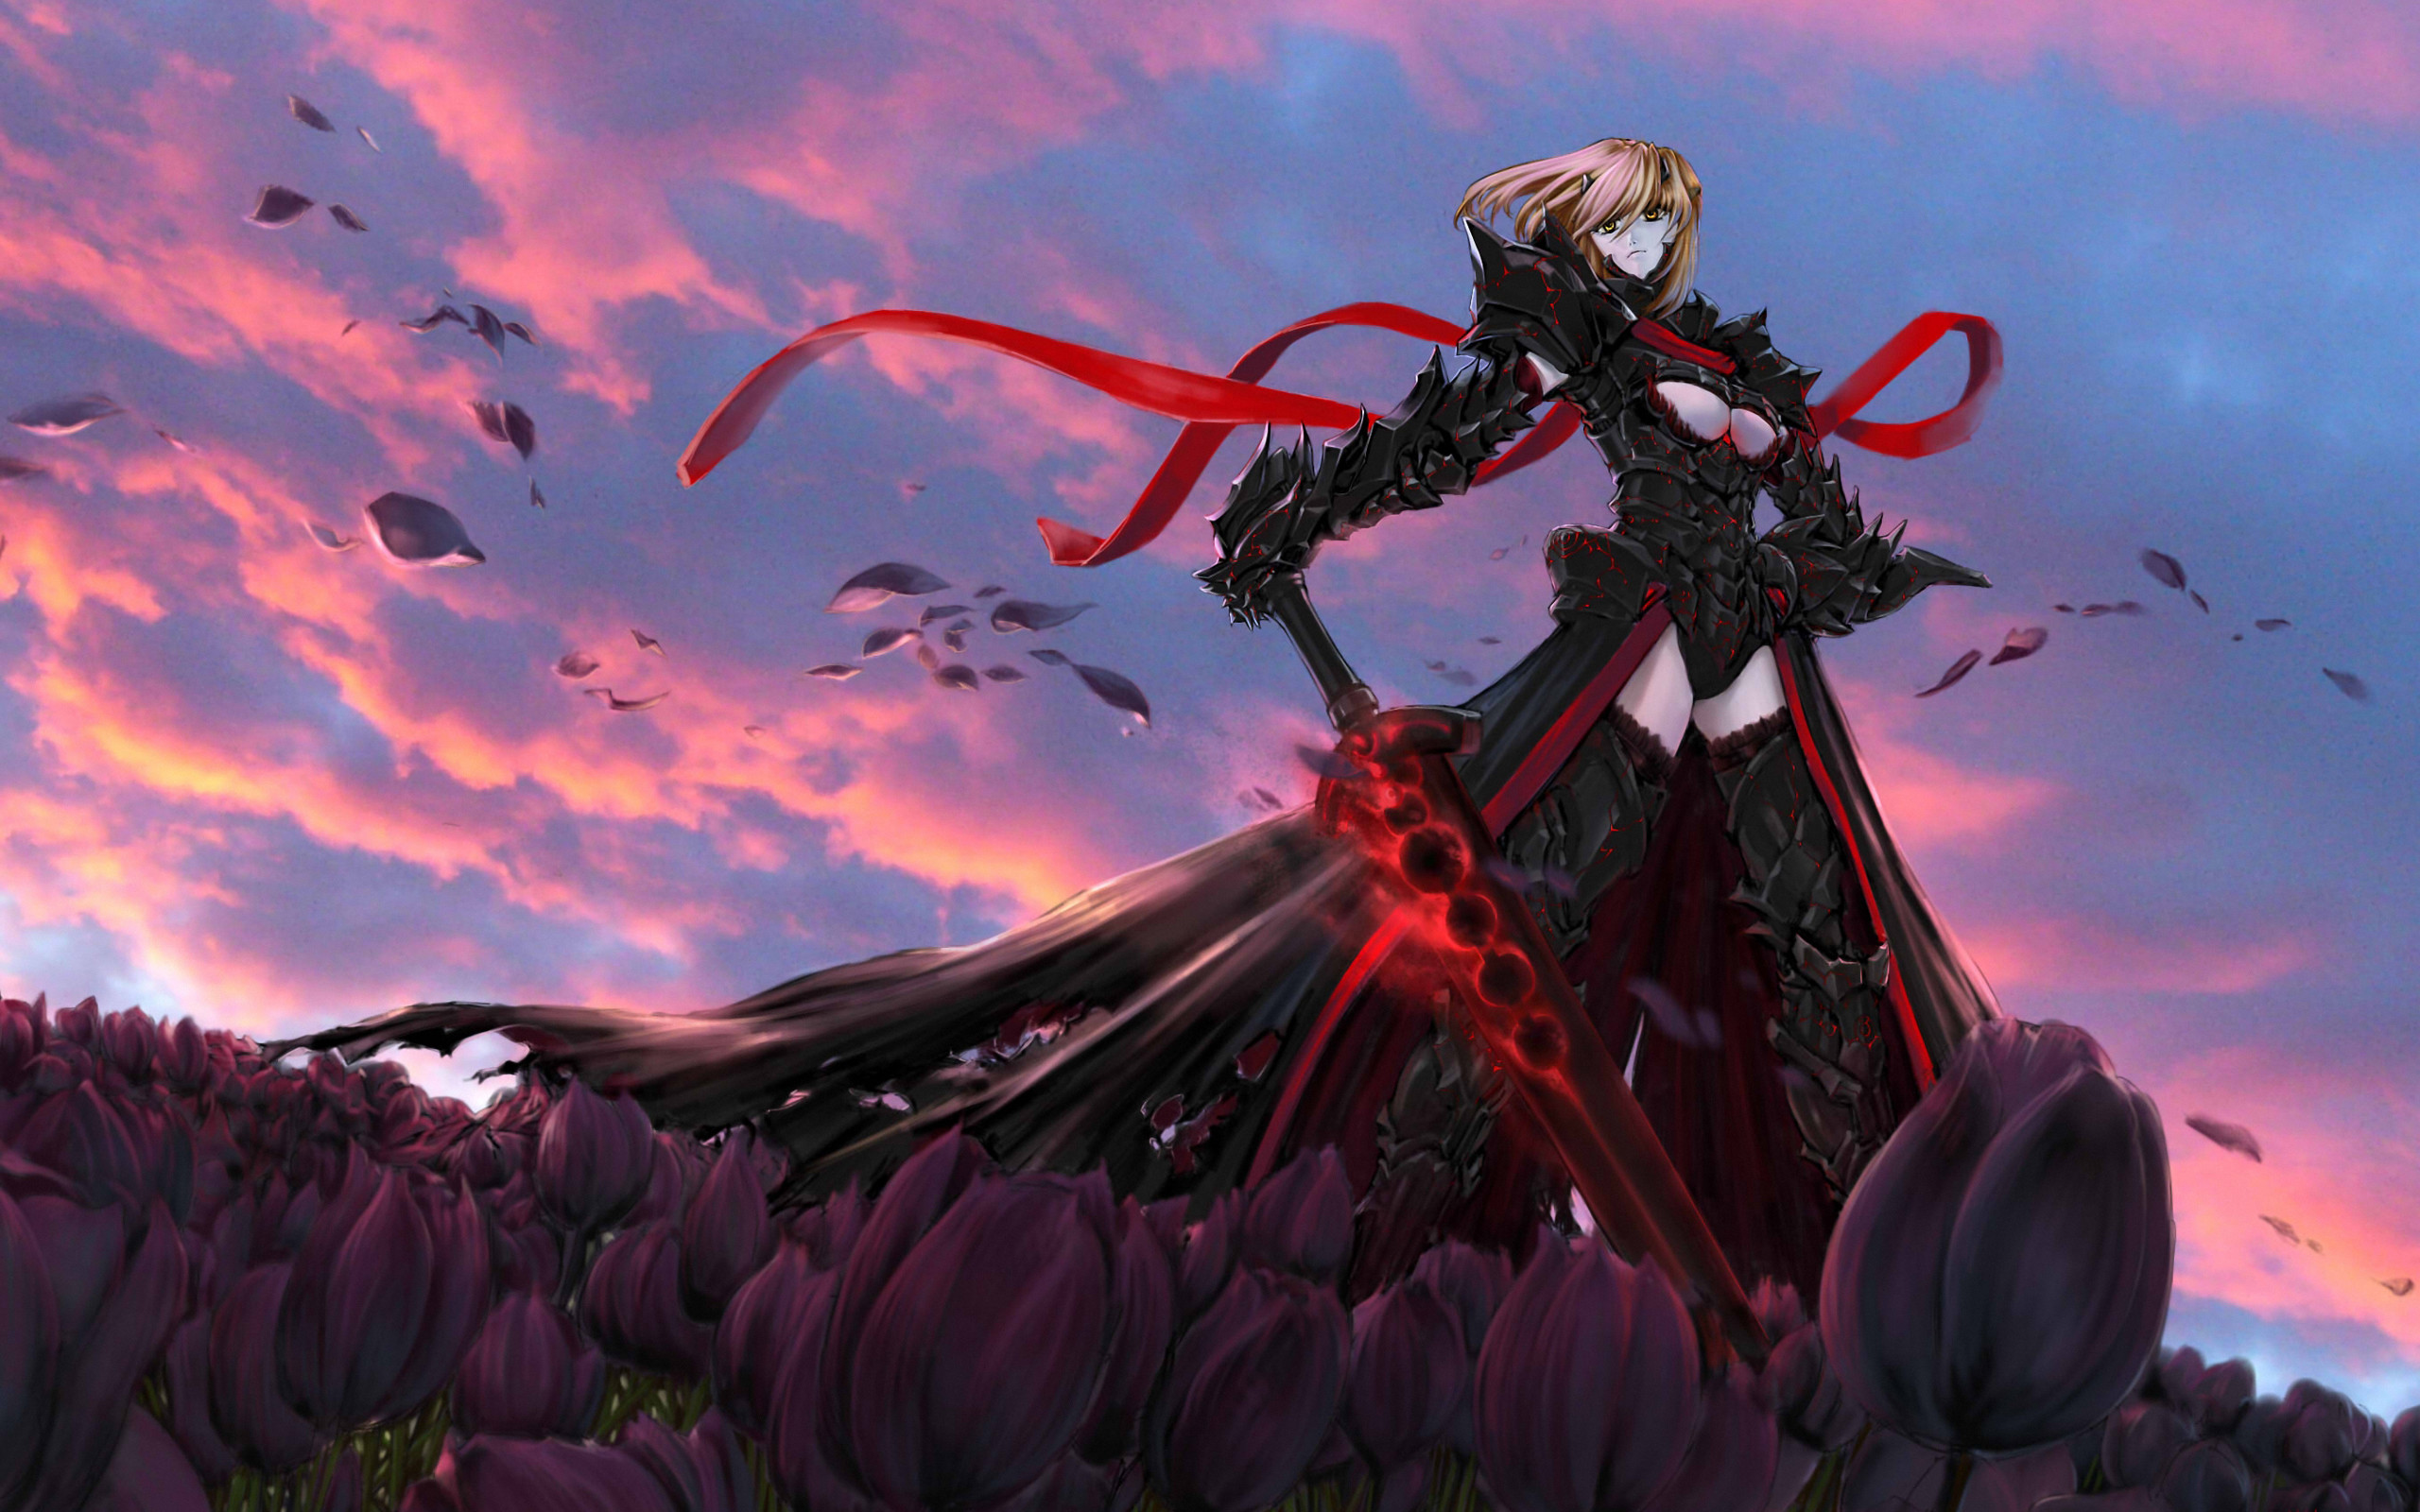 Anime – Fate/Stay Night Saber Alter Wallpaper